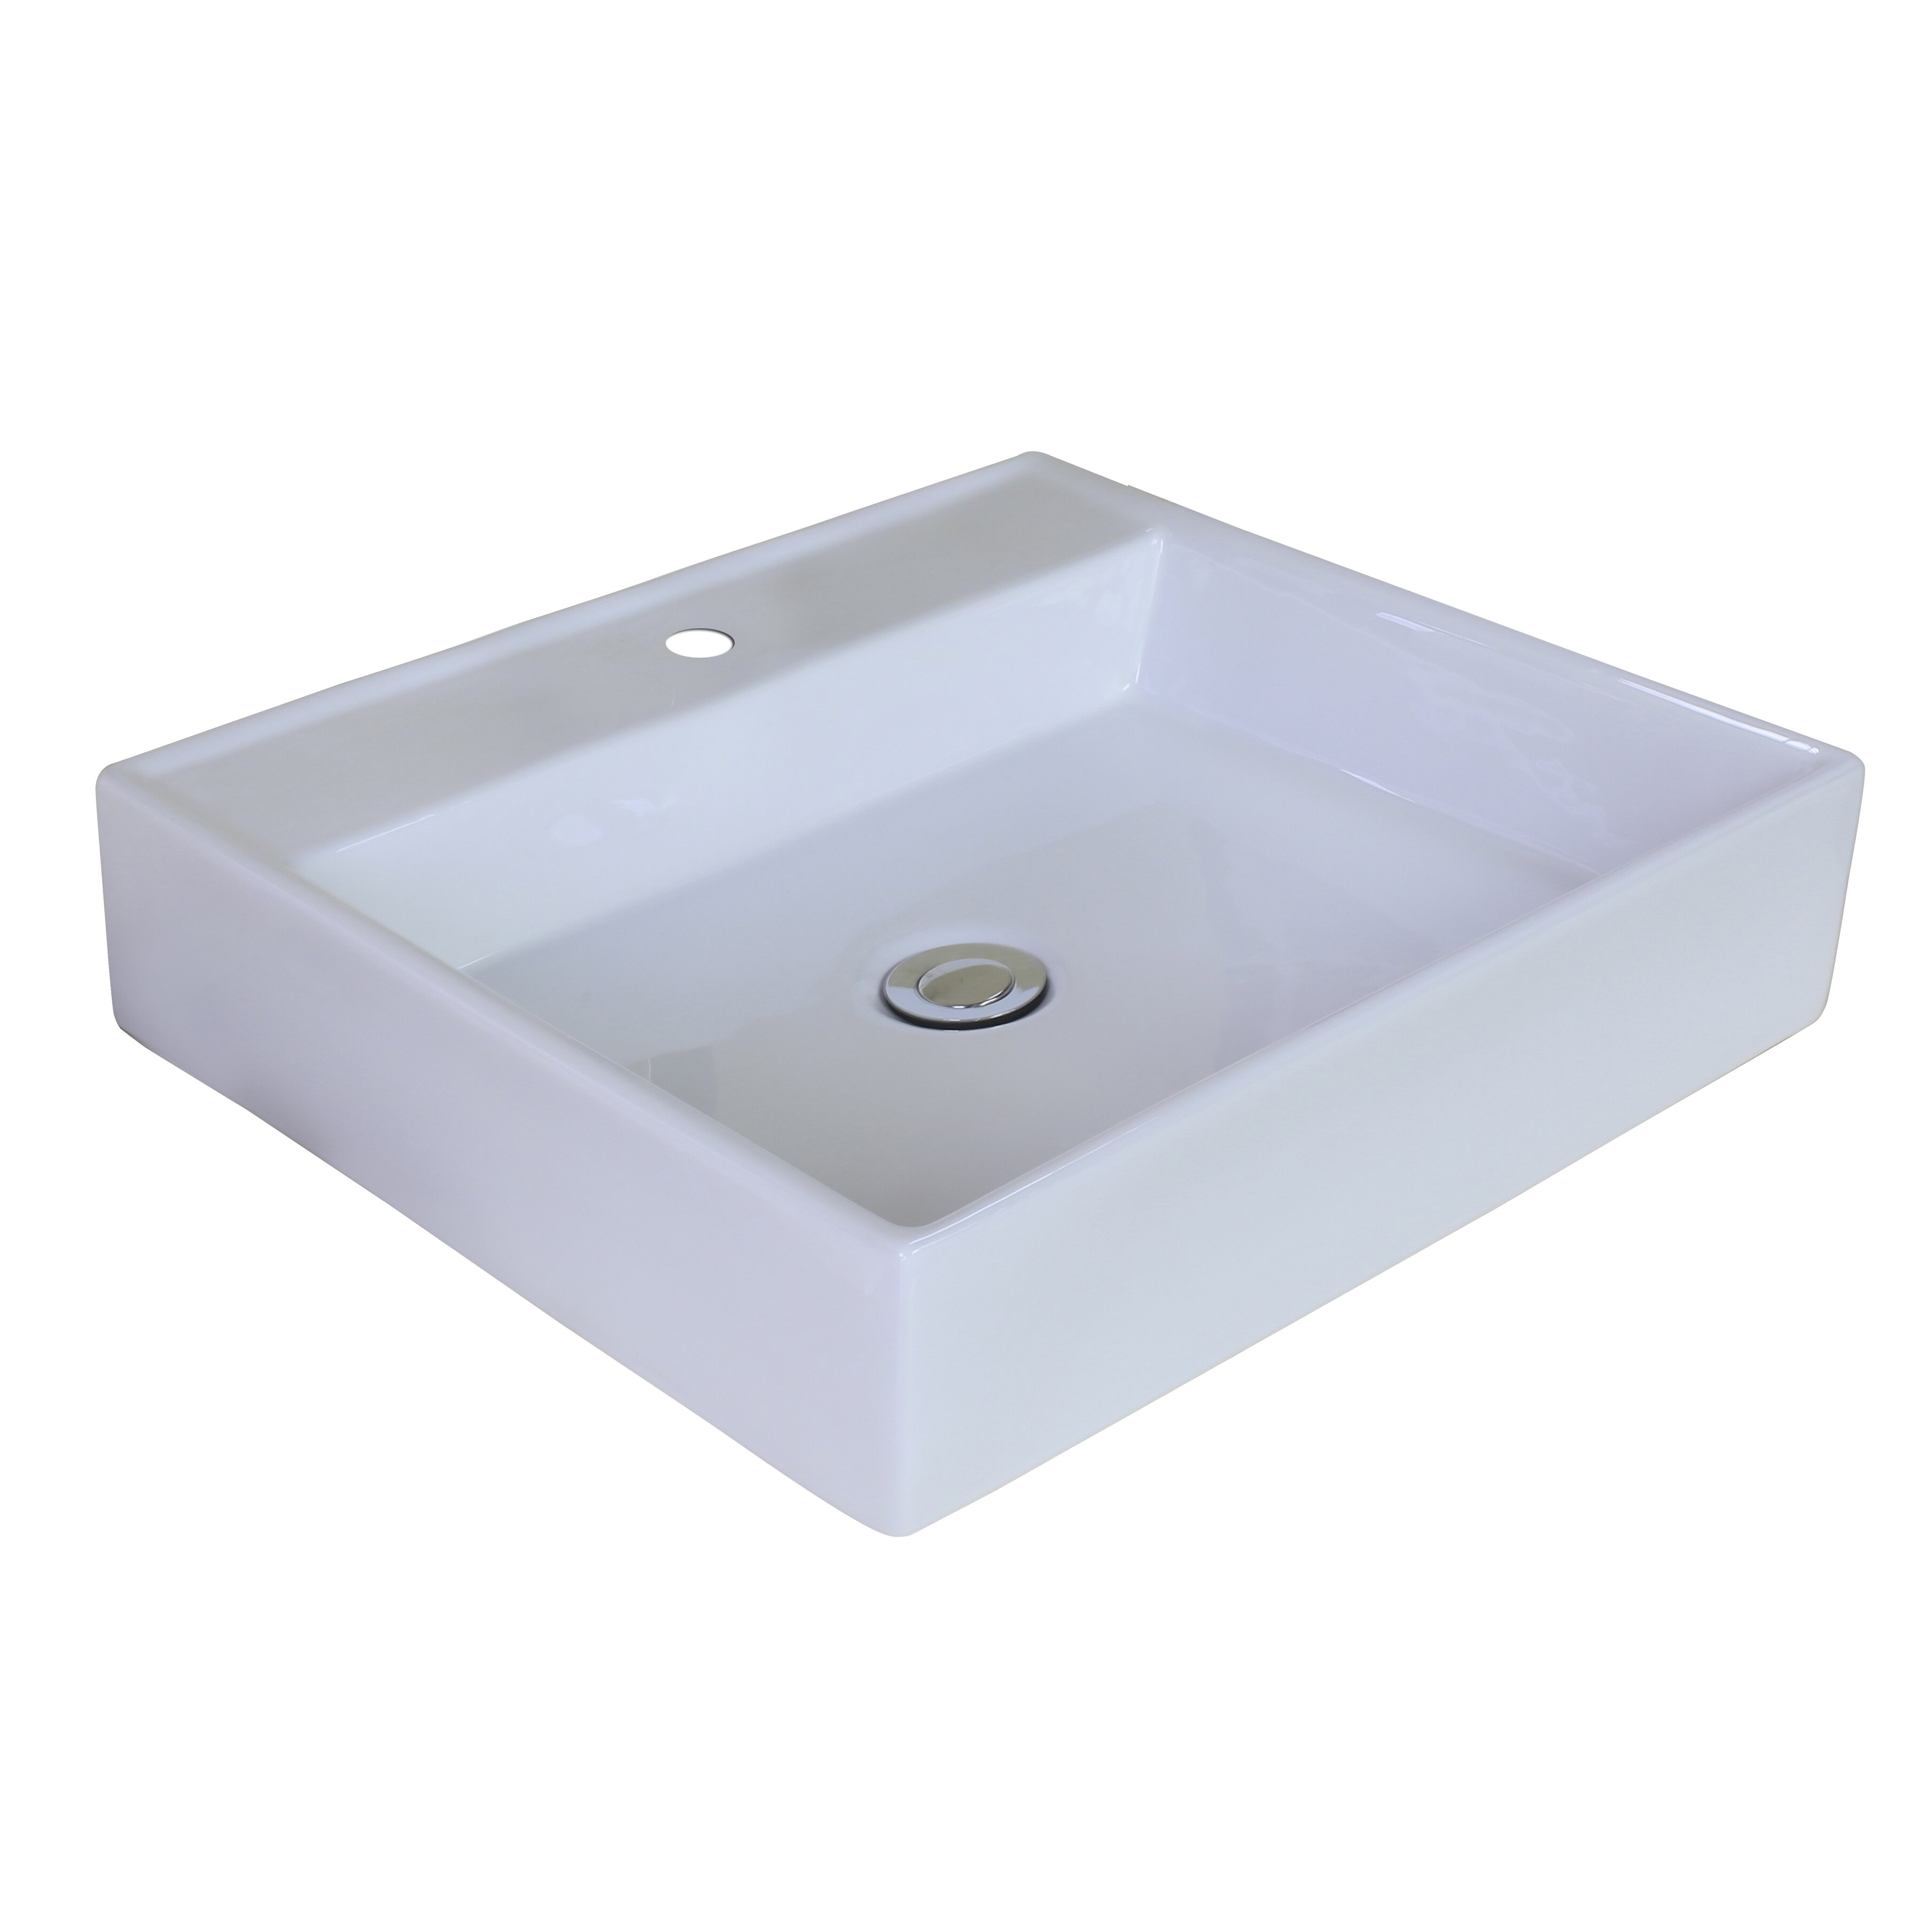 Http Www Wayfair Com Above Counter Rectangle Vessel Bathroom Sink Ai 11029 Amim4804 Html